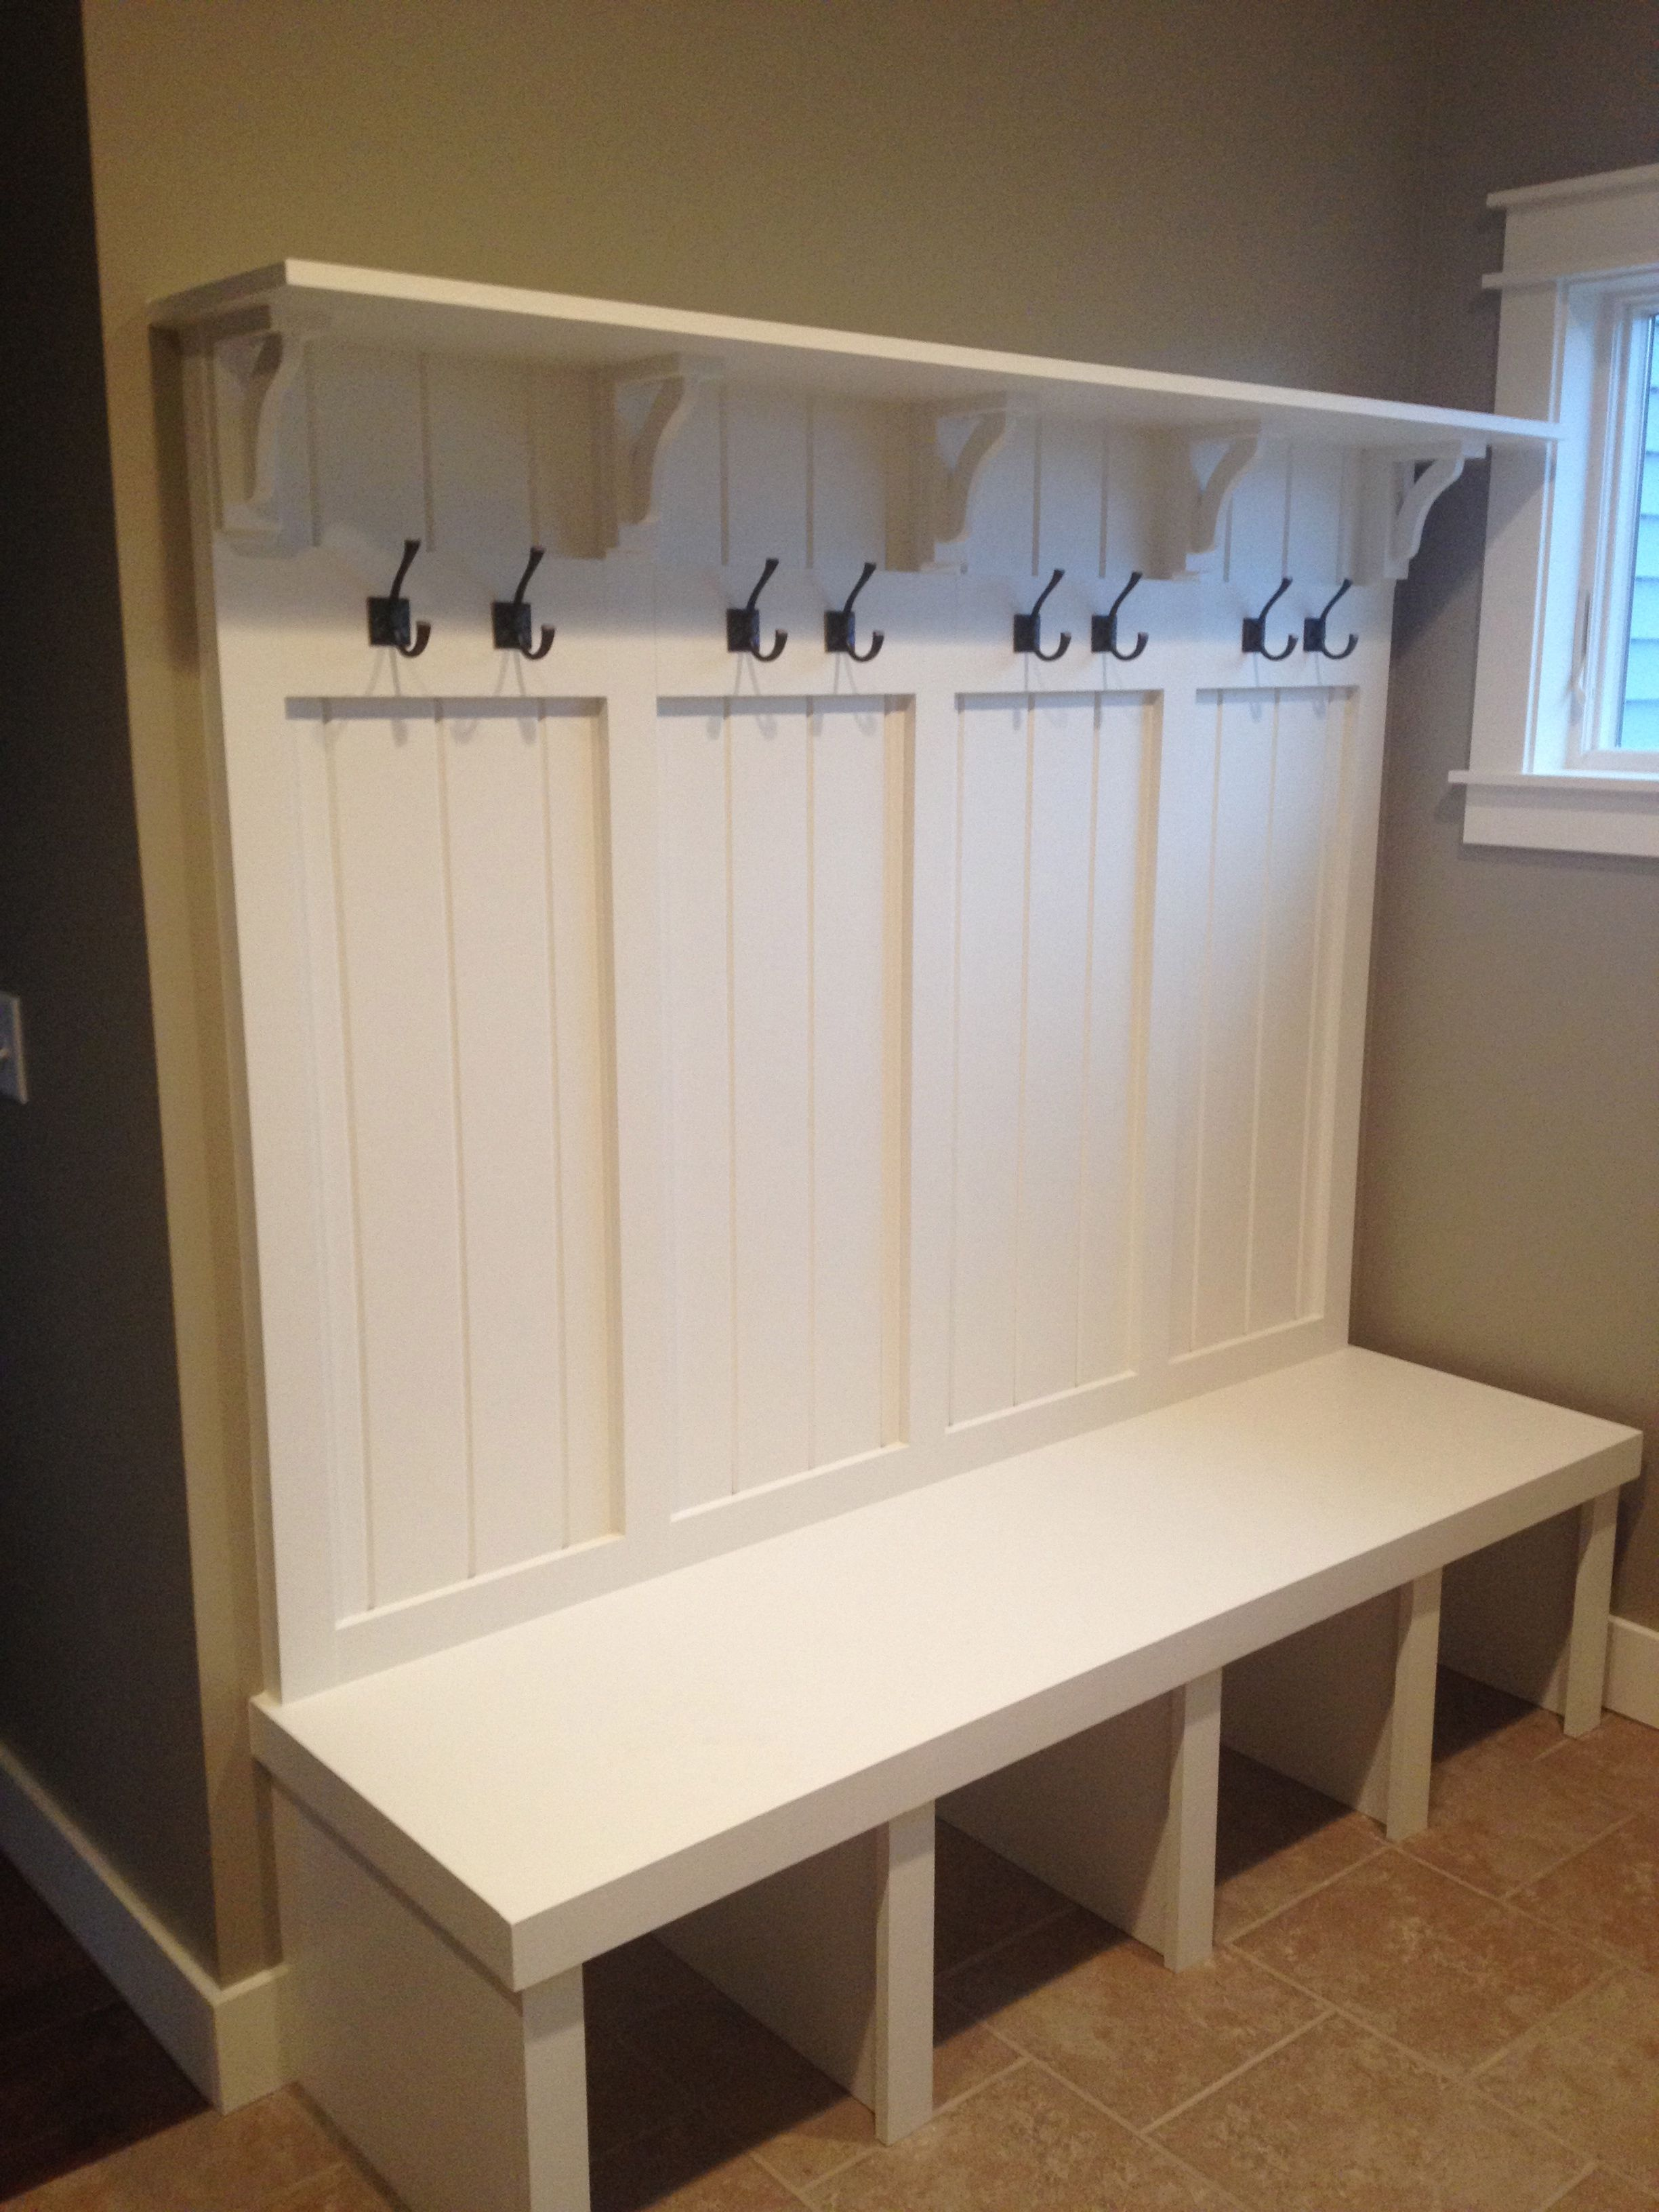 Surprising Entry Way Mudroom Built In Custom Made With By My Hubby We Dailytribune Chair Design For Home Dailytribuneorg